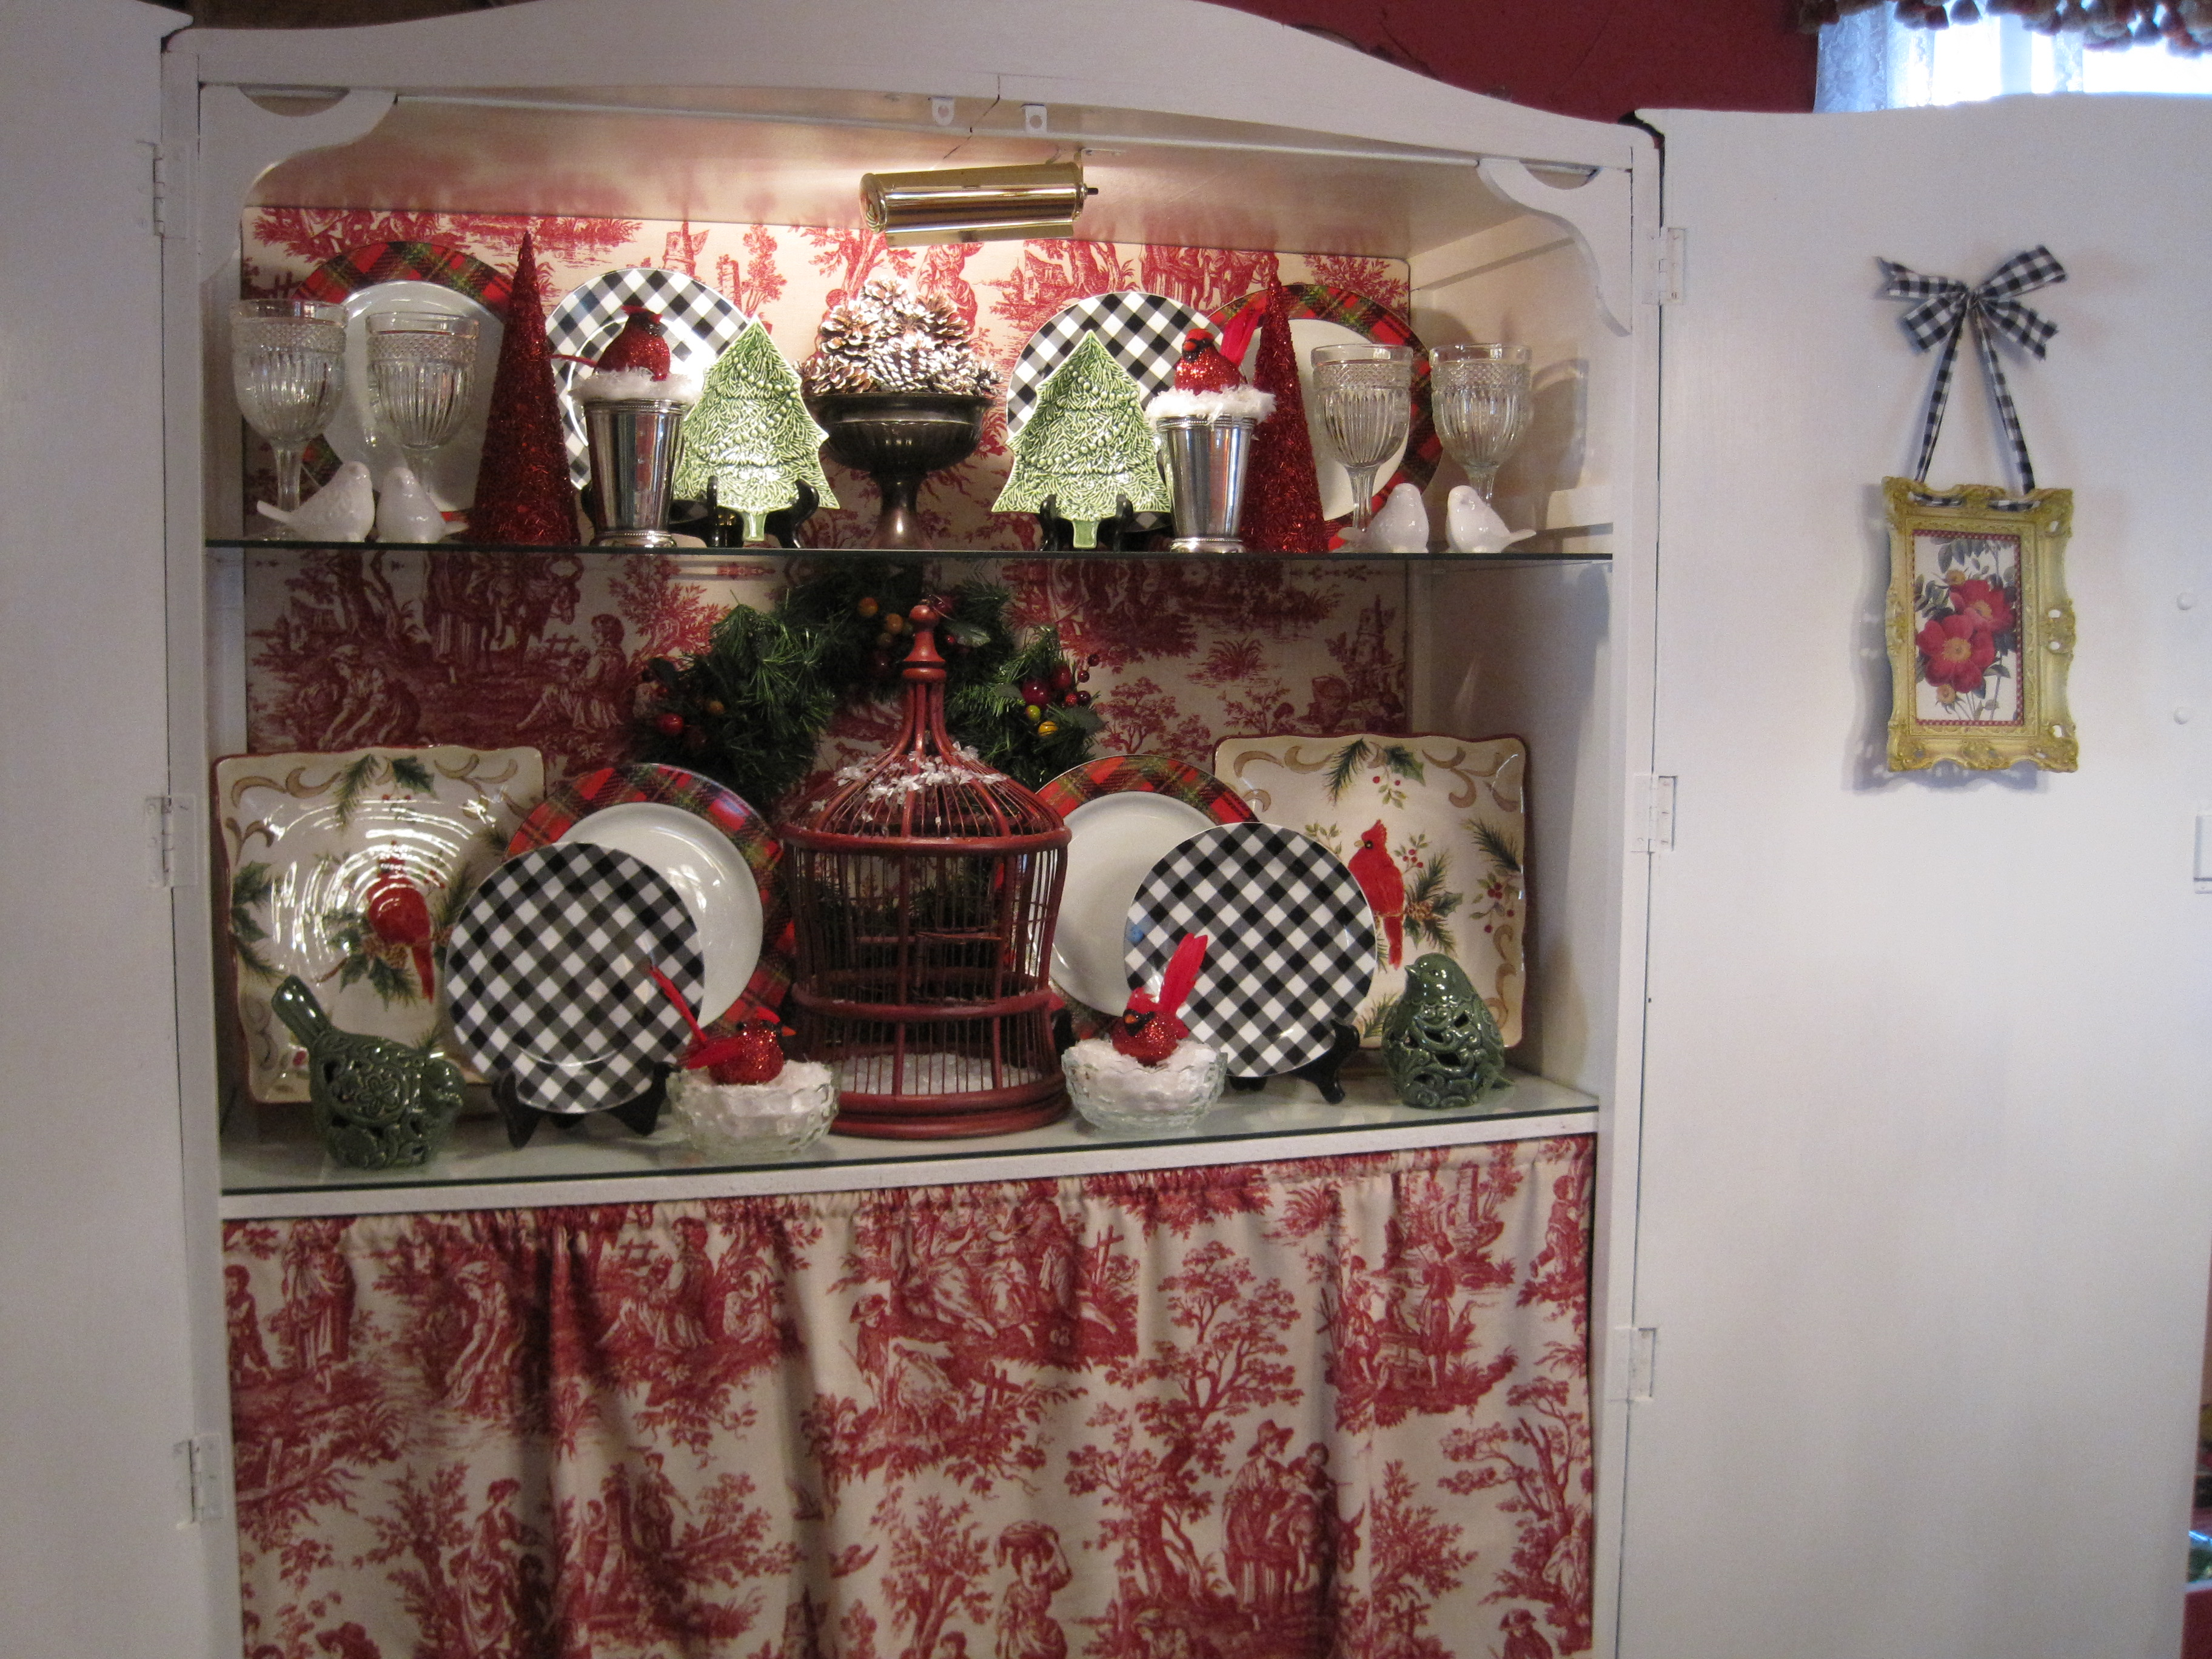 The Space Behind The Toile Curtain Is Crammed Full, Believe Me, And The  Shelves Are My Fun Place To Decorate! I Just Painted The Cabinet White And  Added The ...